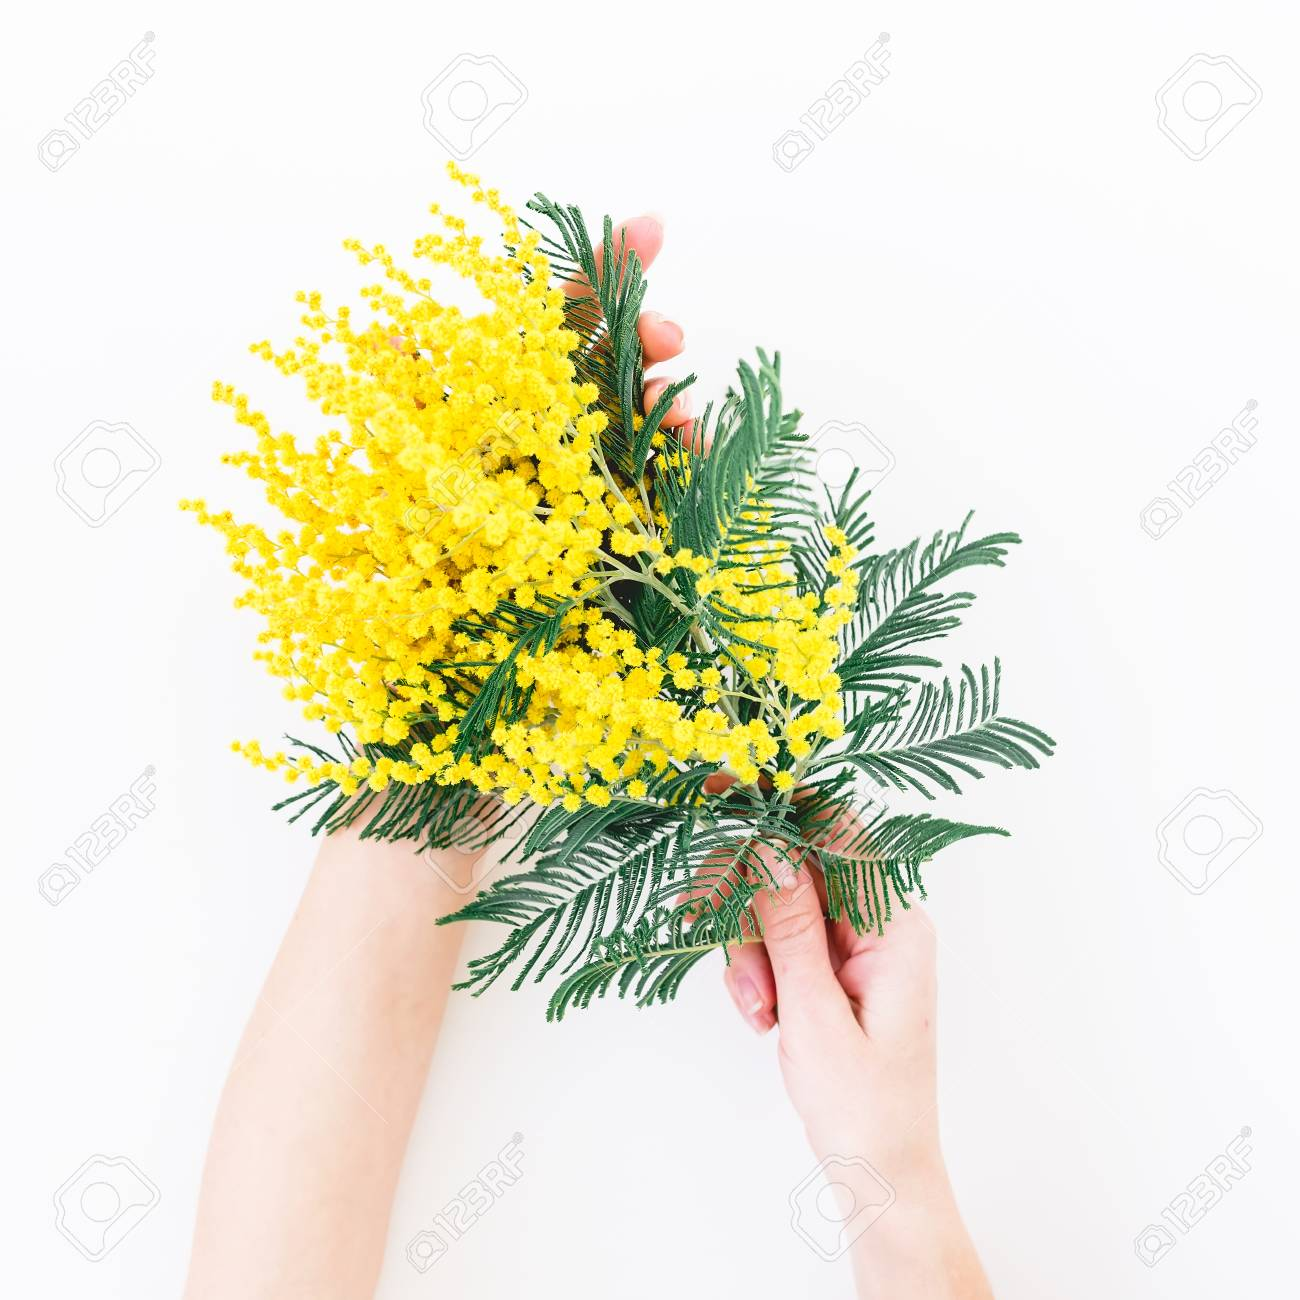 Woman Hold In Hands Bouquet Of Yellow Flower Branches On White